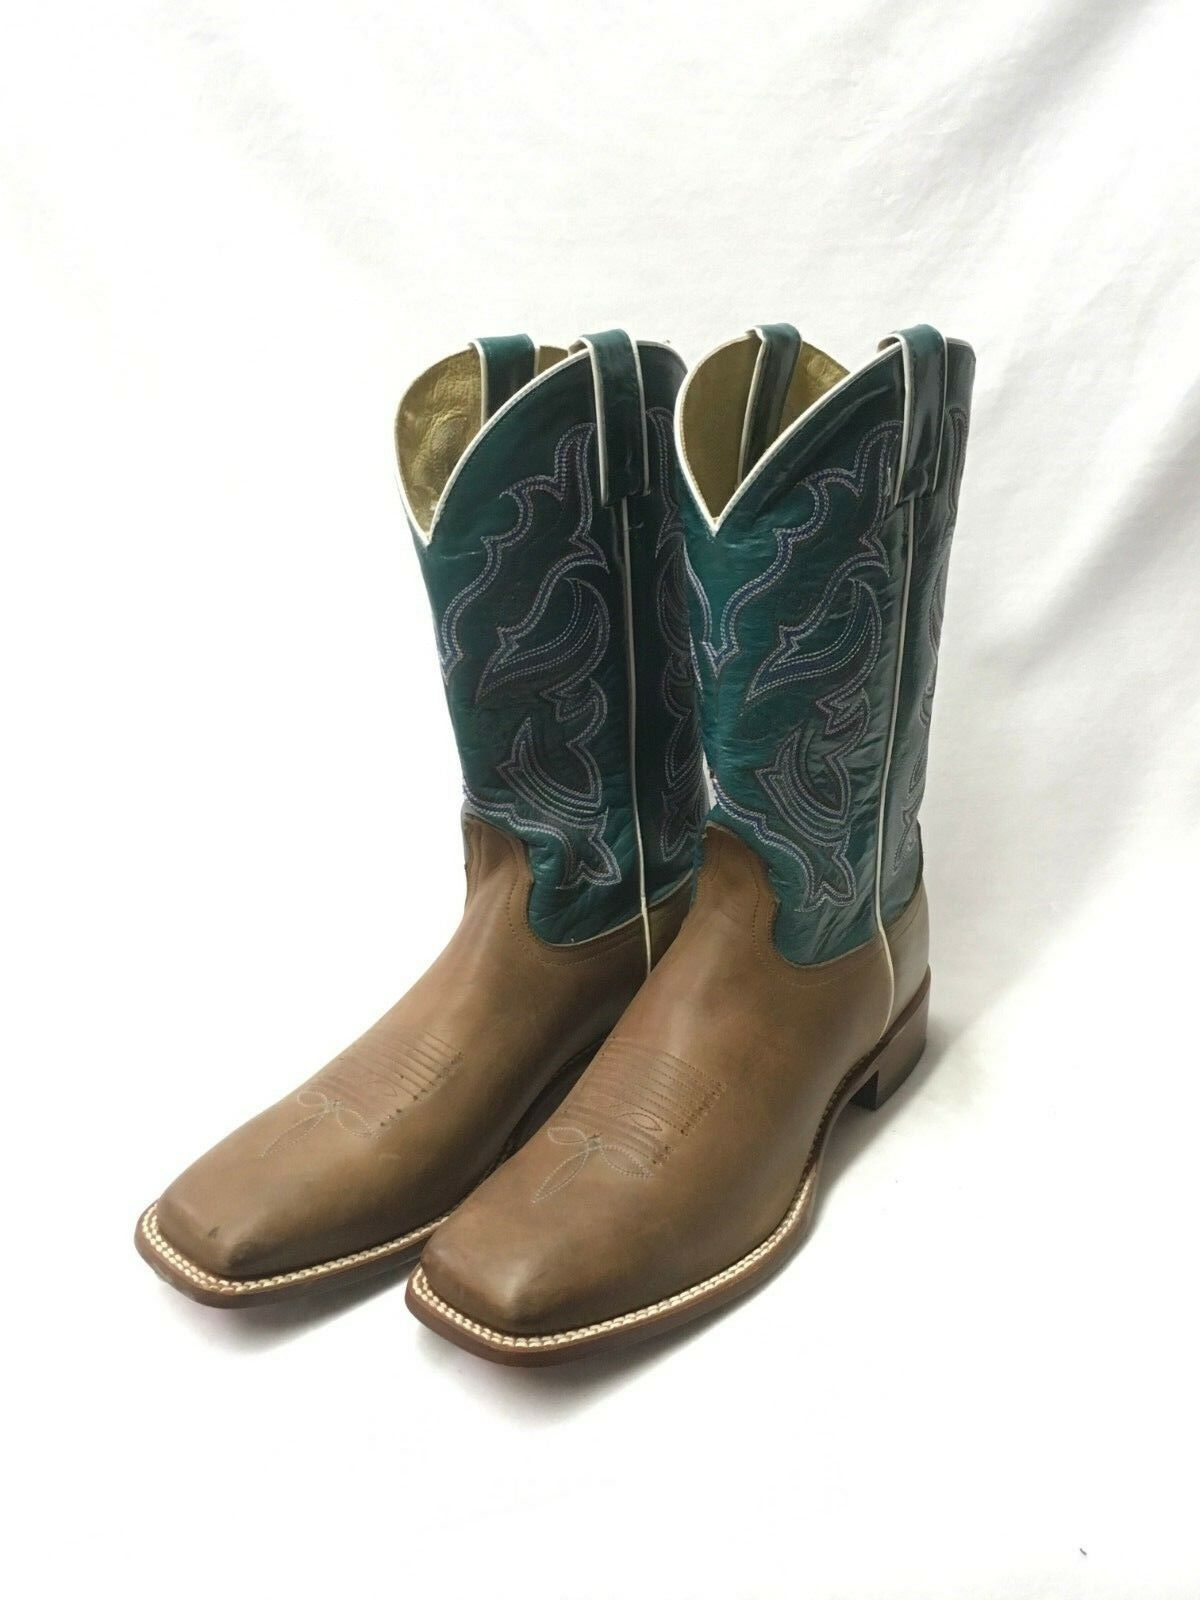 Ladies Nocona Boots-Brown Square Toe w/Turquoise Crunch Top, Style NL4022